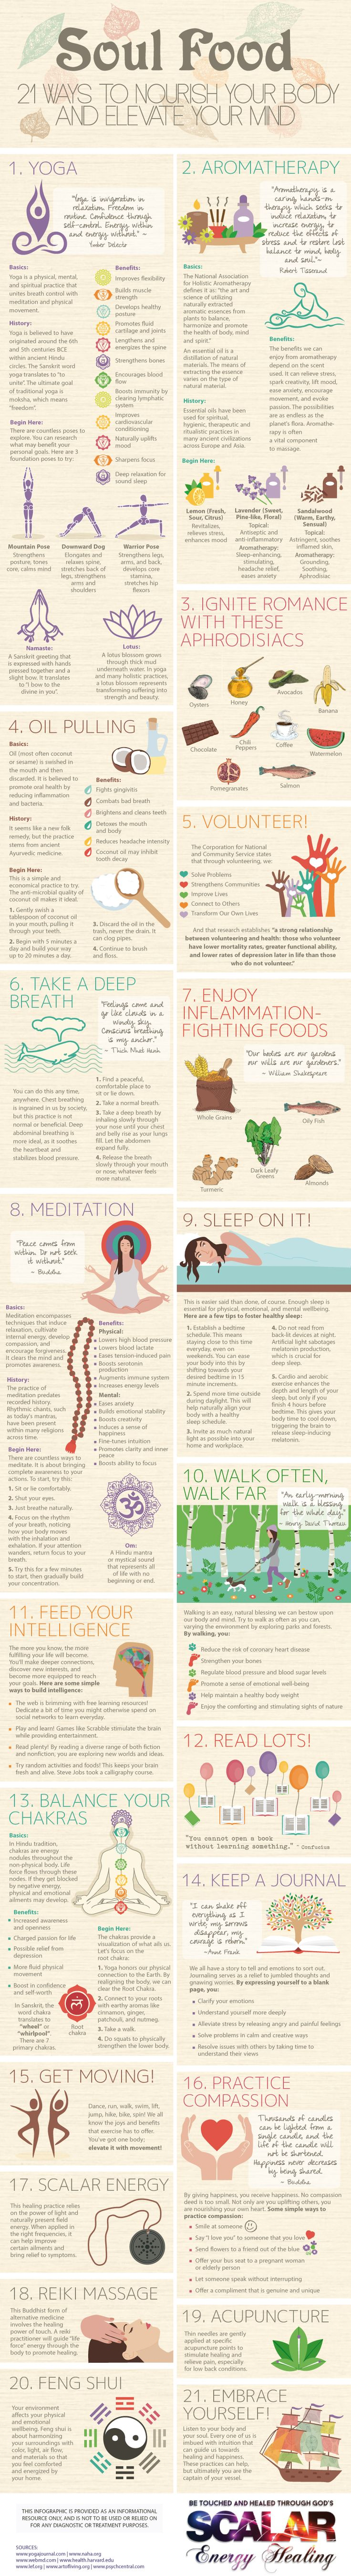 21 Ways to Nourish Your Body and Elevate Your Mind #infographic ~ Visualistan